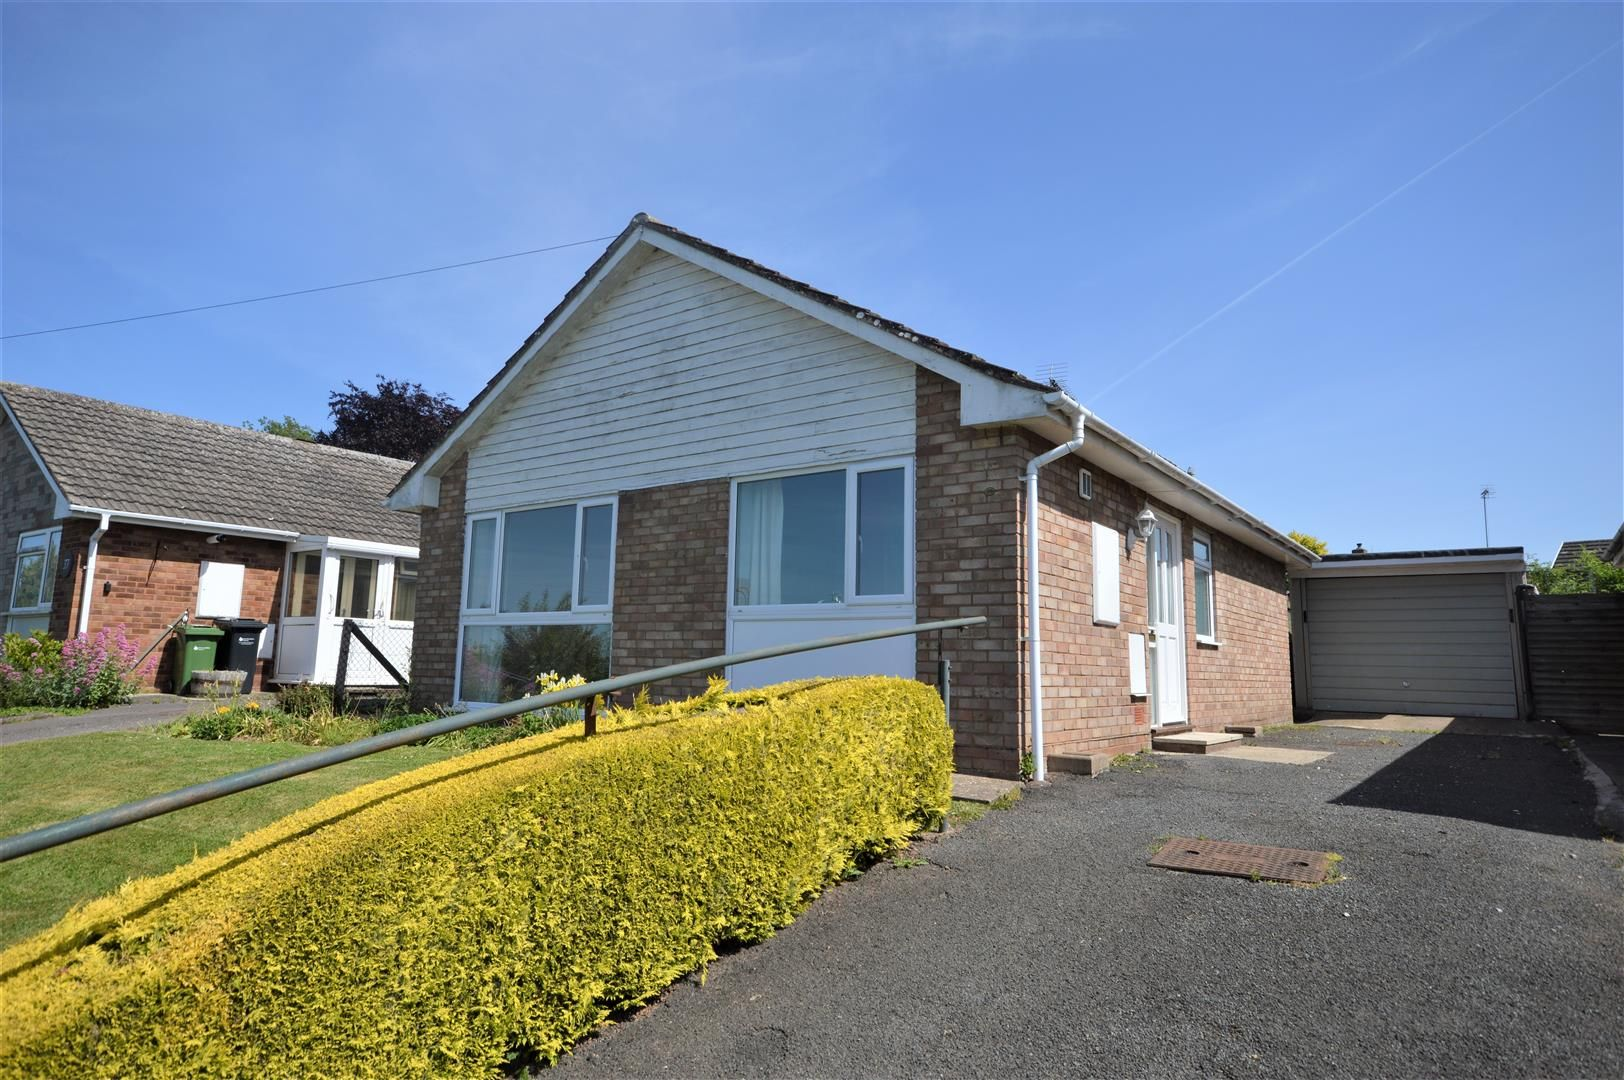 2 bed detached-bungalow for sale in Leominster 1